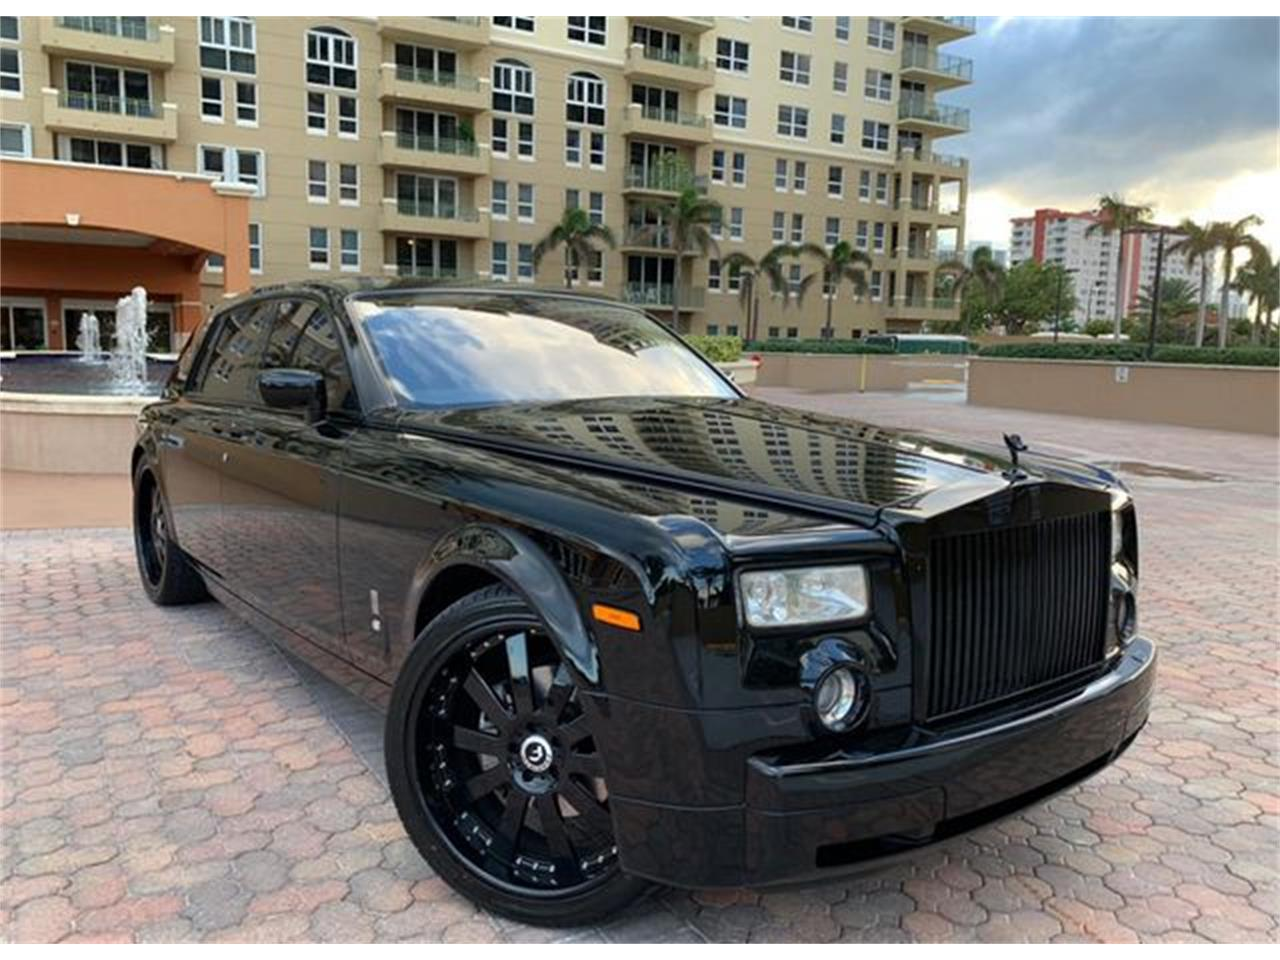 2006 Rolls-Royce Phantom for sale in Valley Park, MO – photo 79